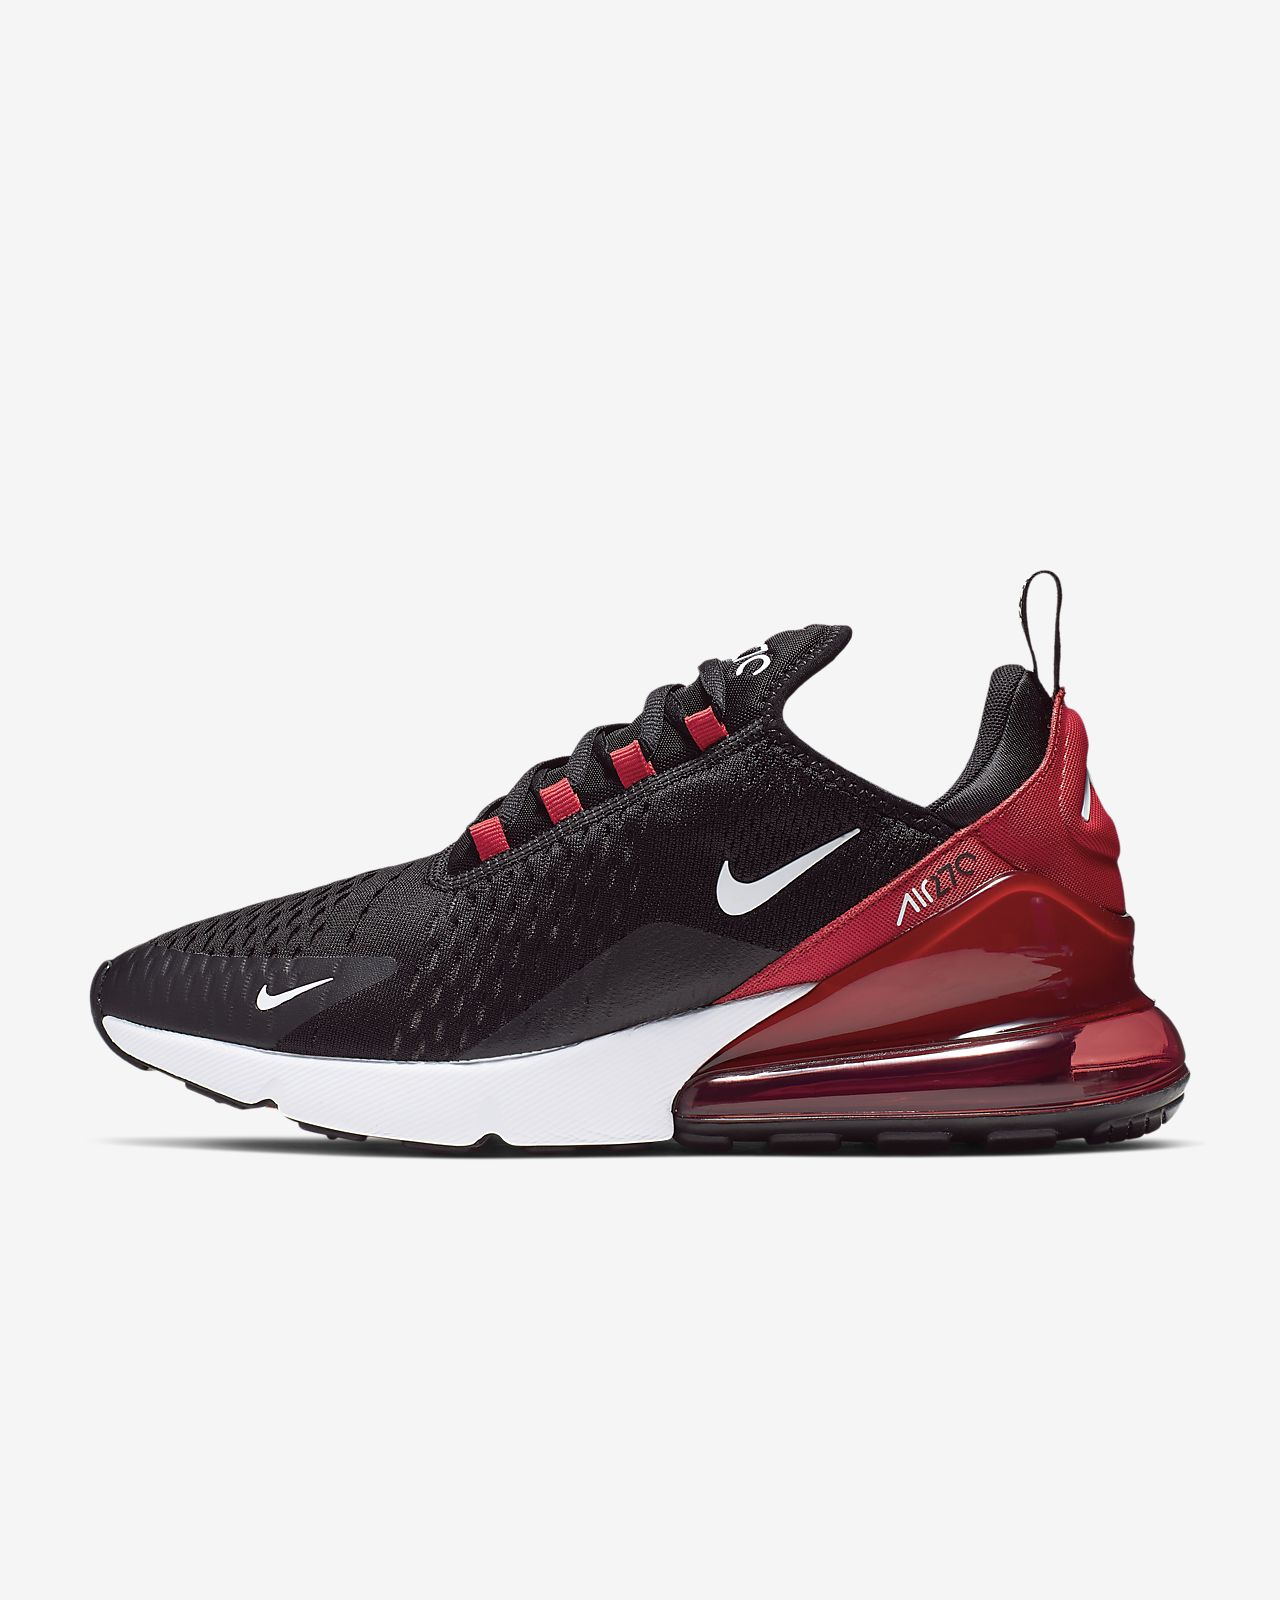 meet 80f95 9f267 Men s Shoe. Nike Air Max 270